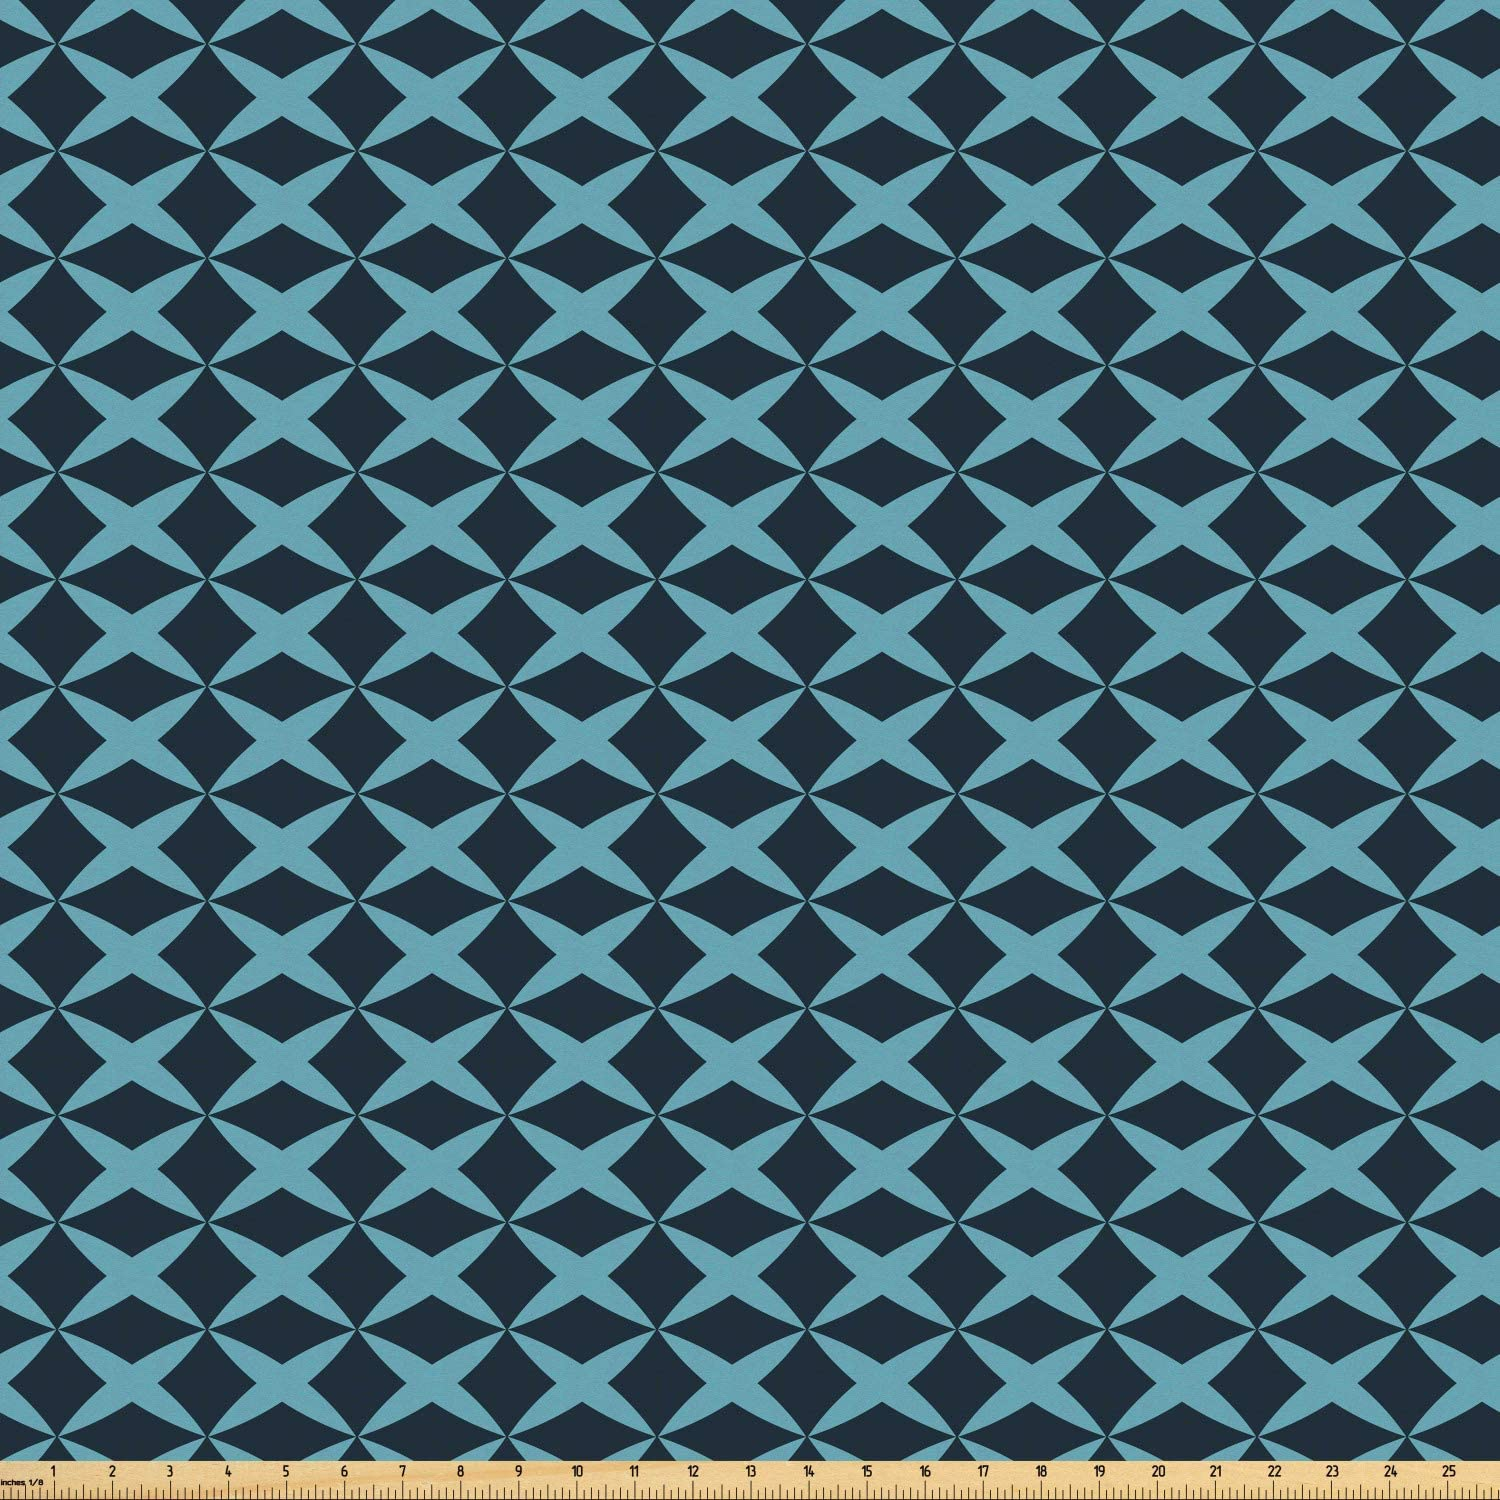 Ambesonne Blue Fabric by The Yard, Wire Inspired Floral Like Image Thick Crossed Horizontal Lines Image, Microfiber Fabric for Arts and Crafts Textiles & Decor, 1 Yard, Slate Blue and Pale Blue